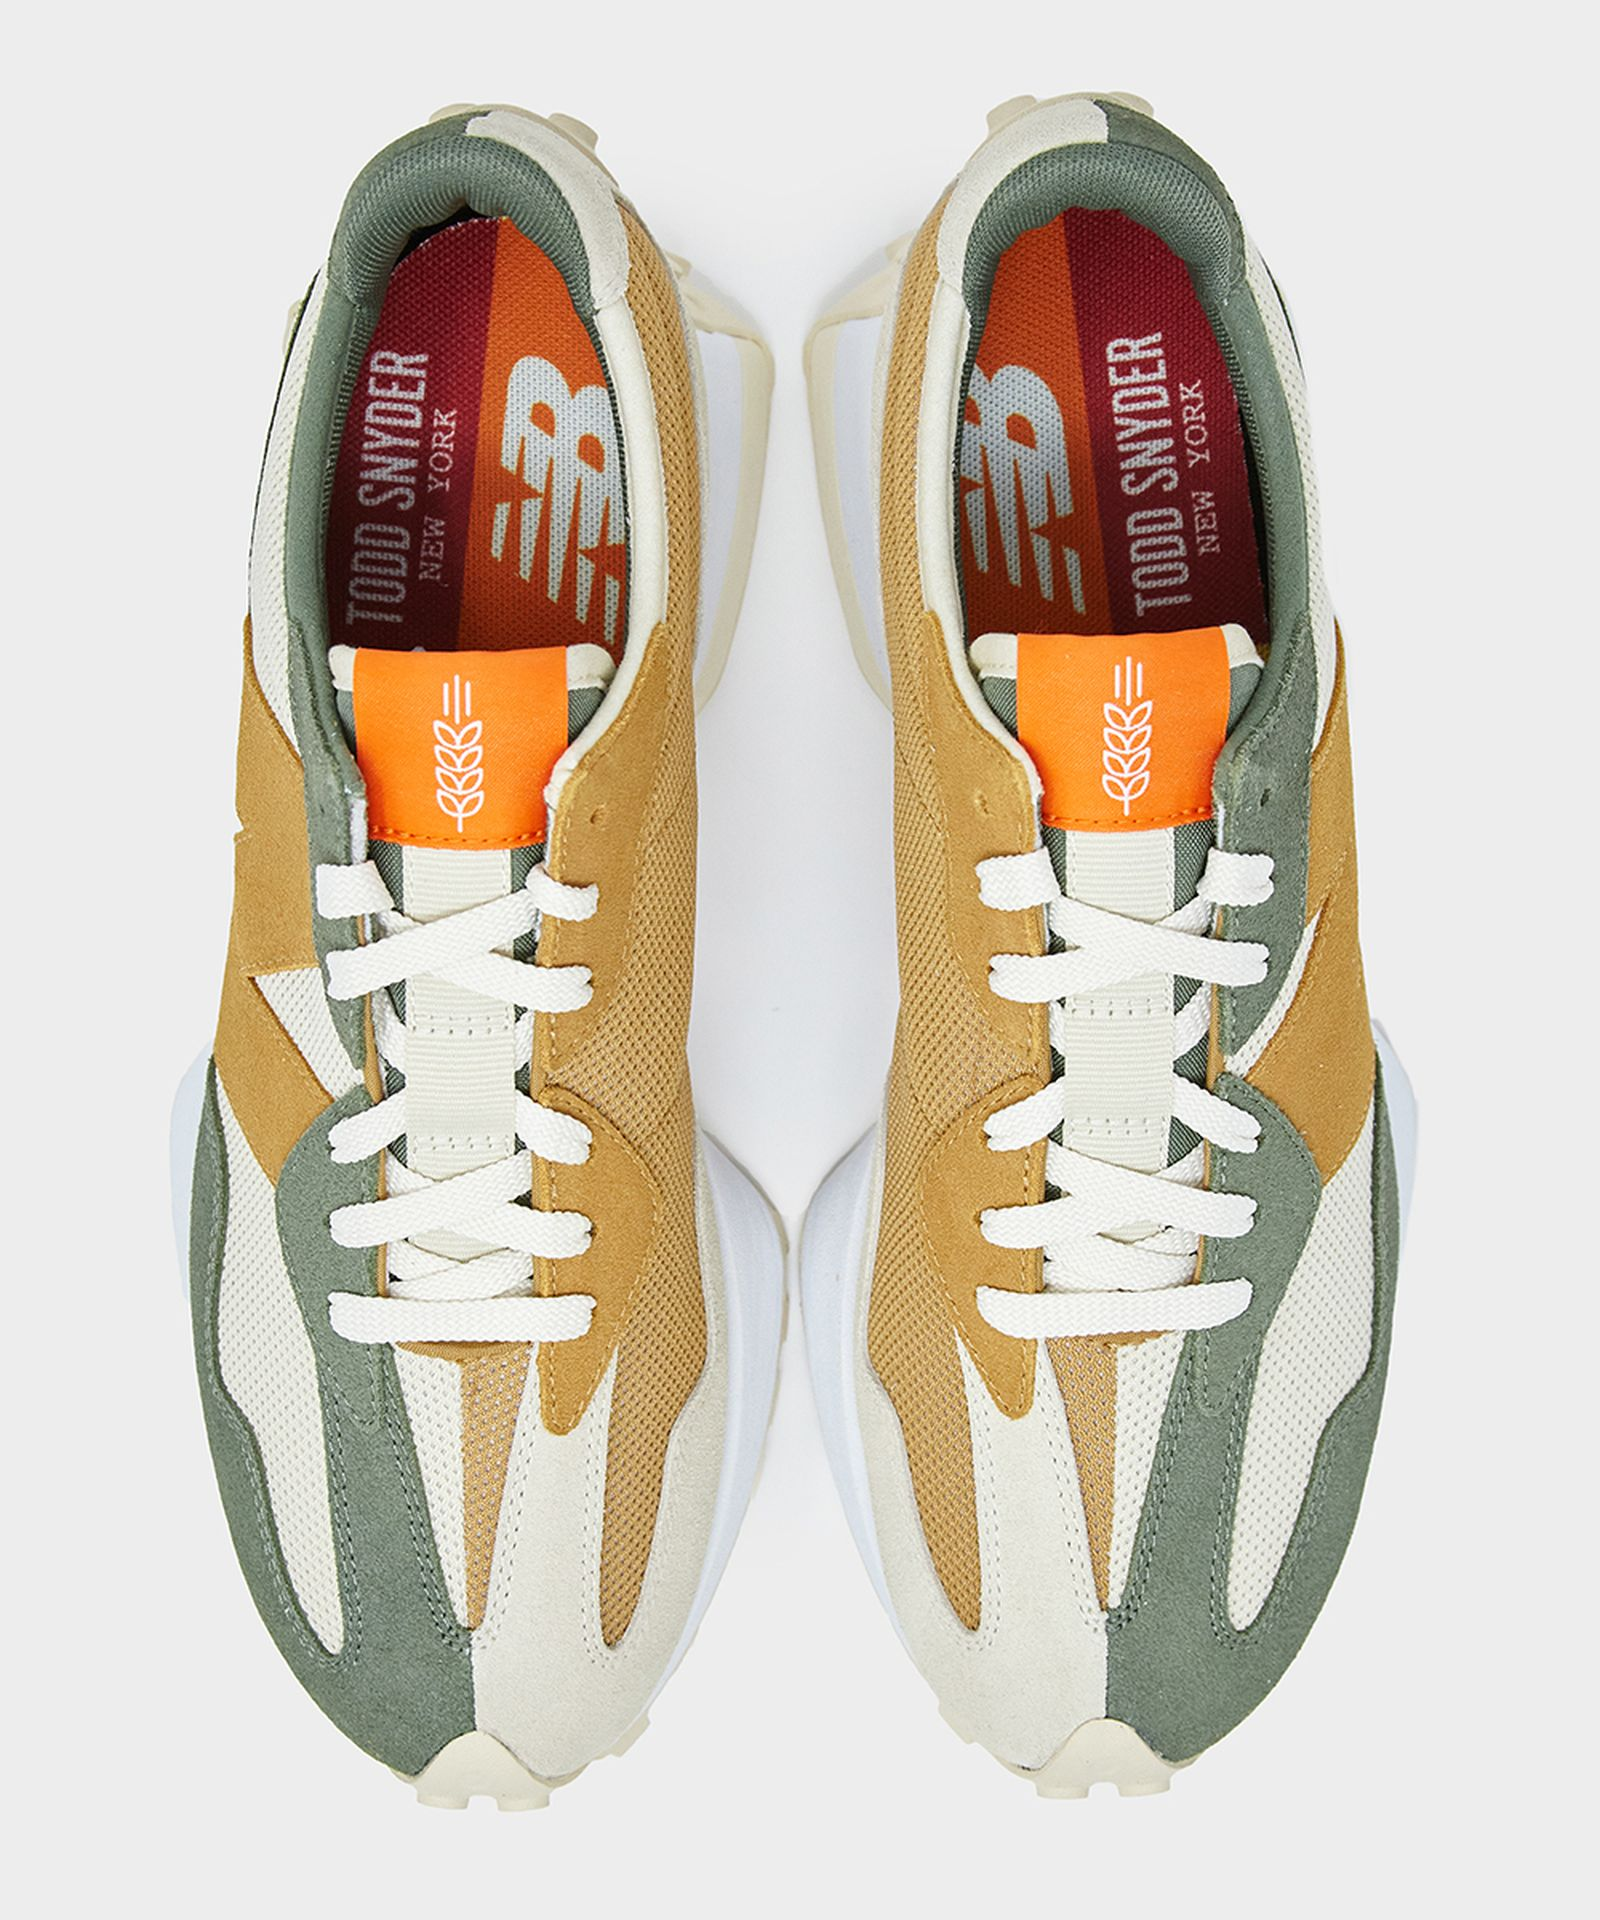 todd-snyder-new-balance-327-farmers-market-release-date-price-1-11